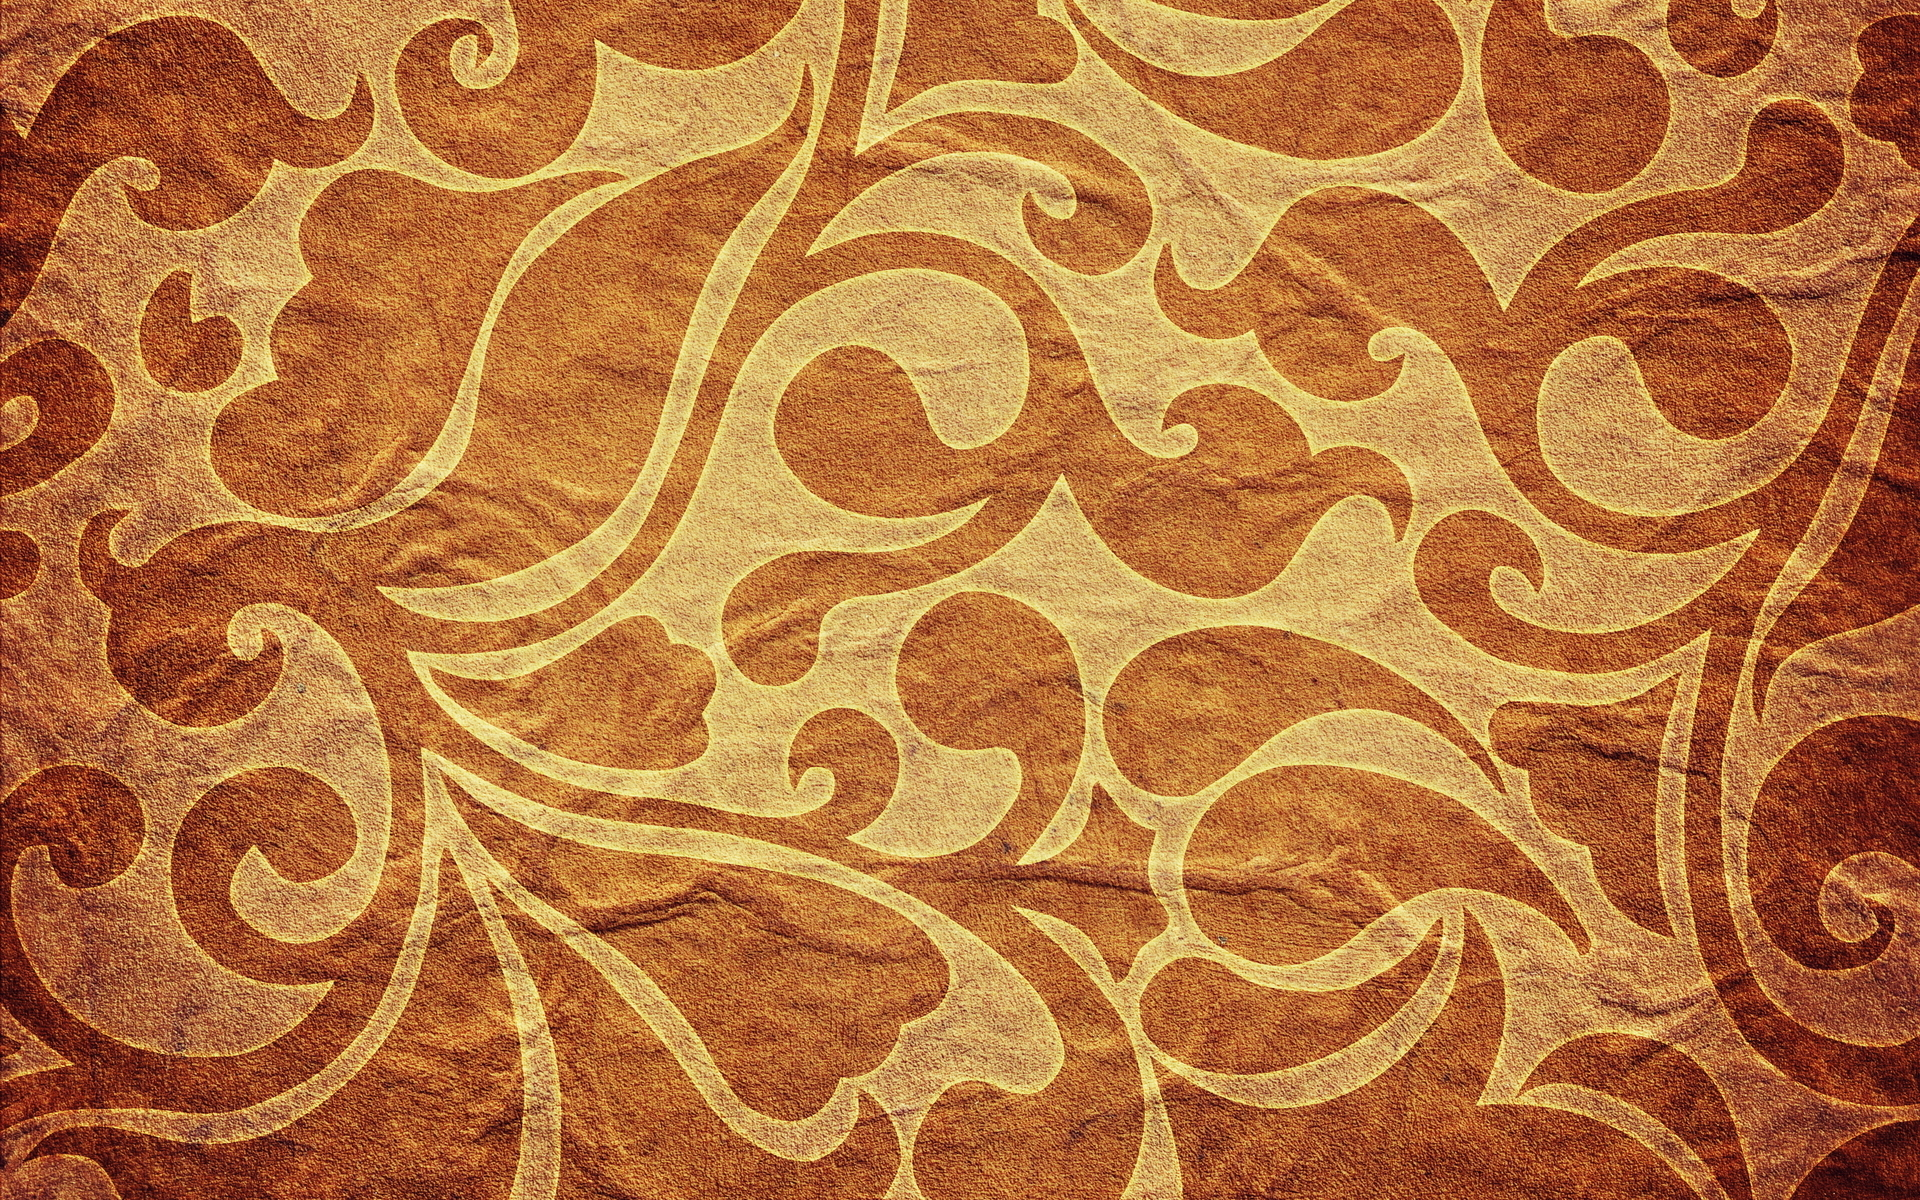 Texture Backgrouns Free Download